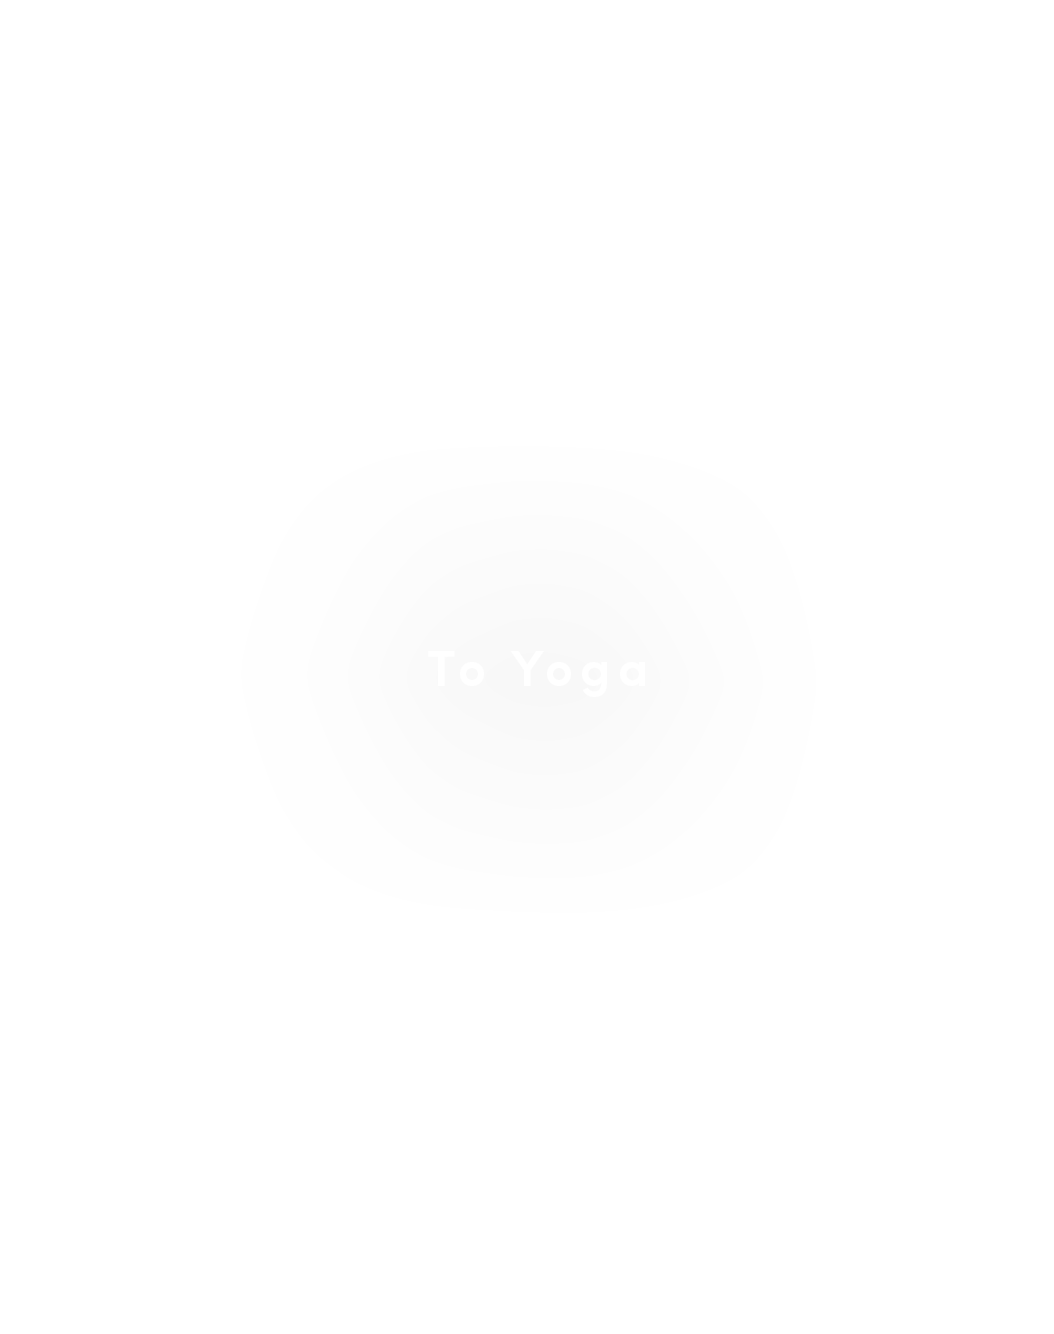 TO YOGA